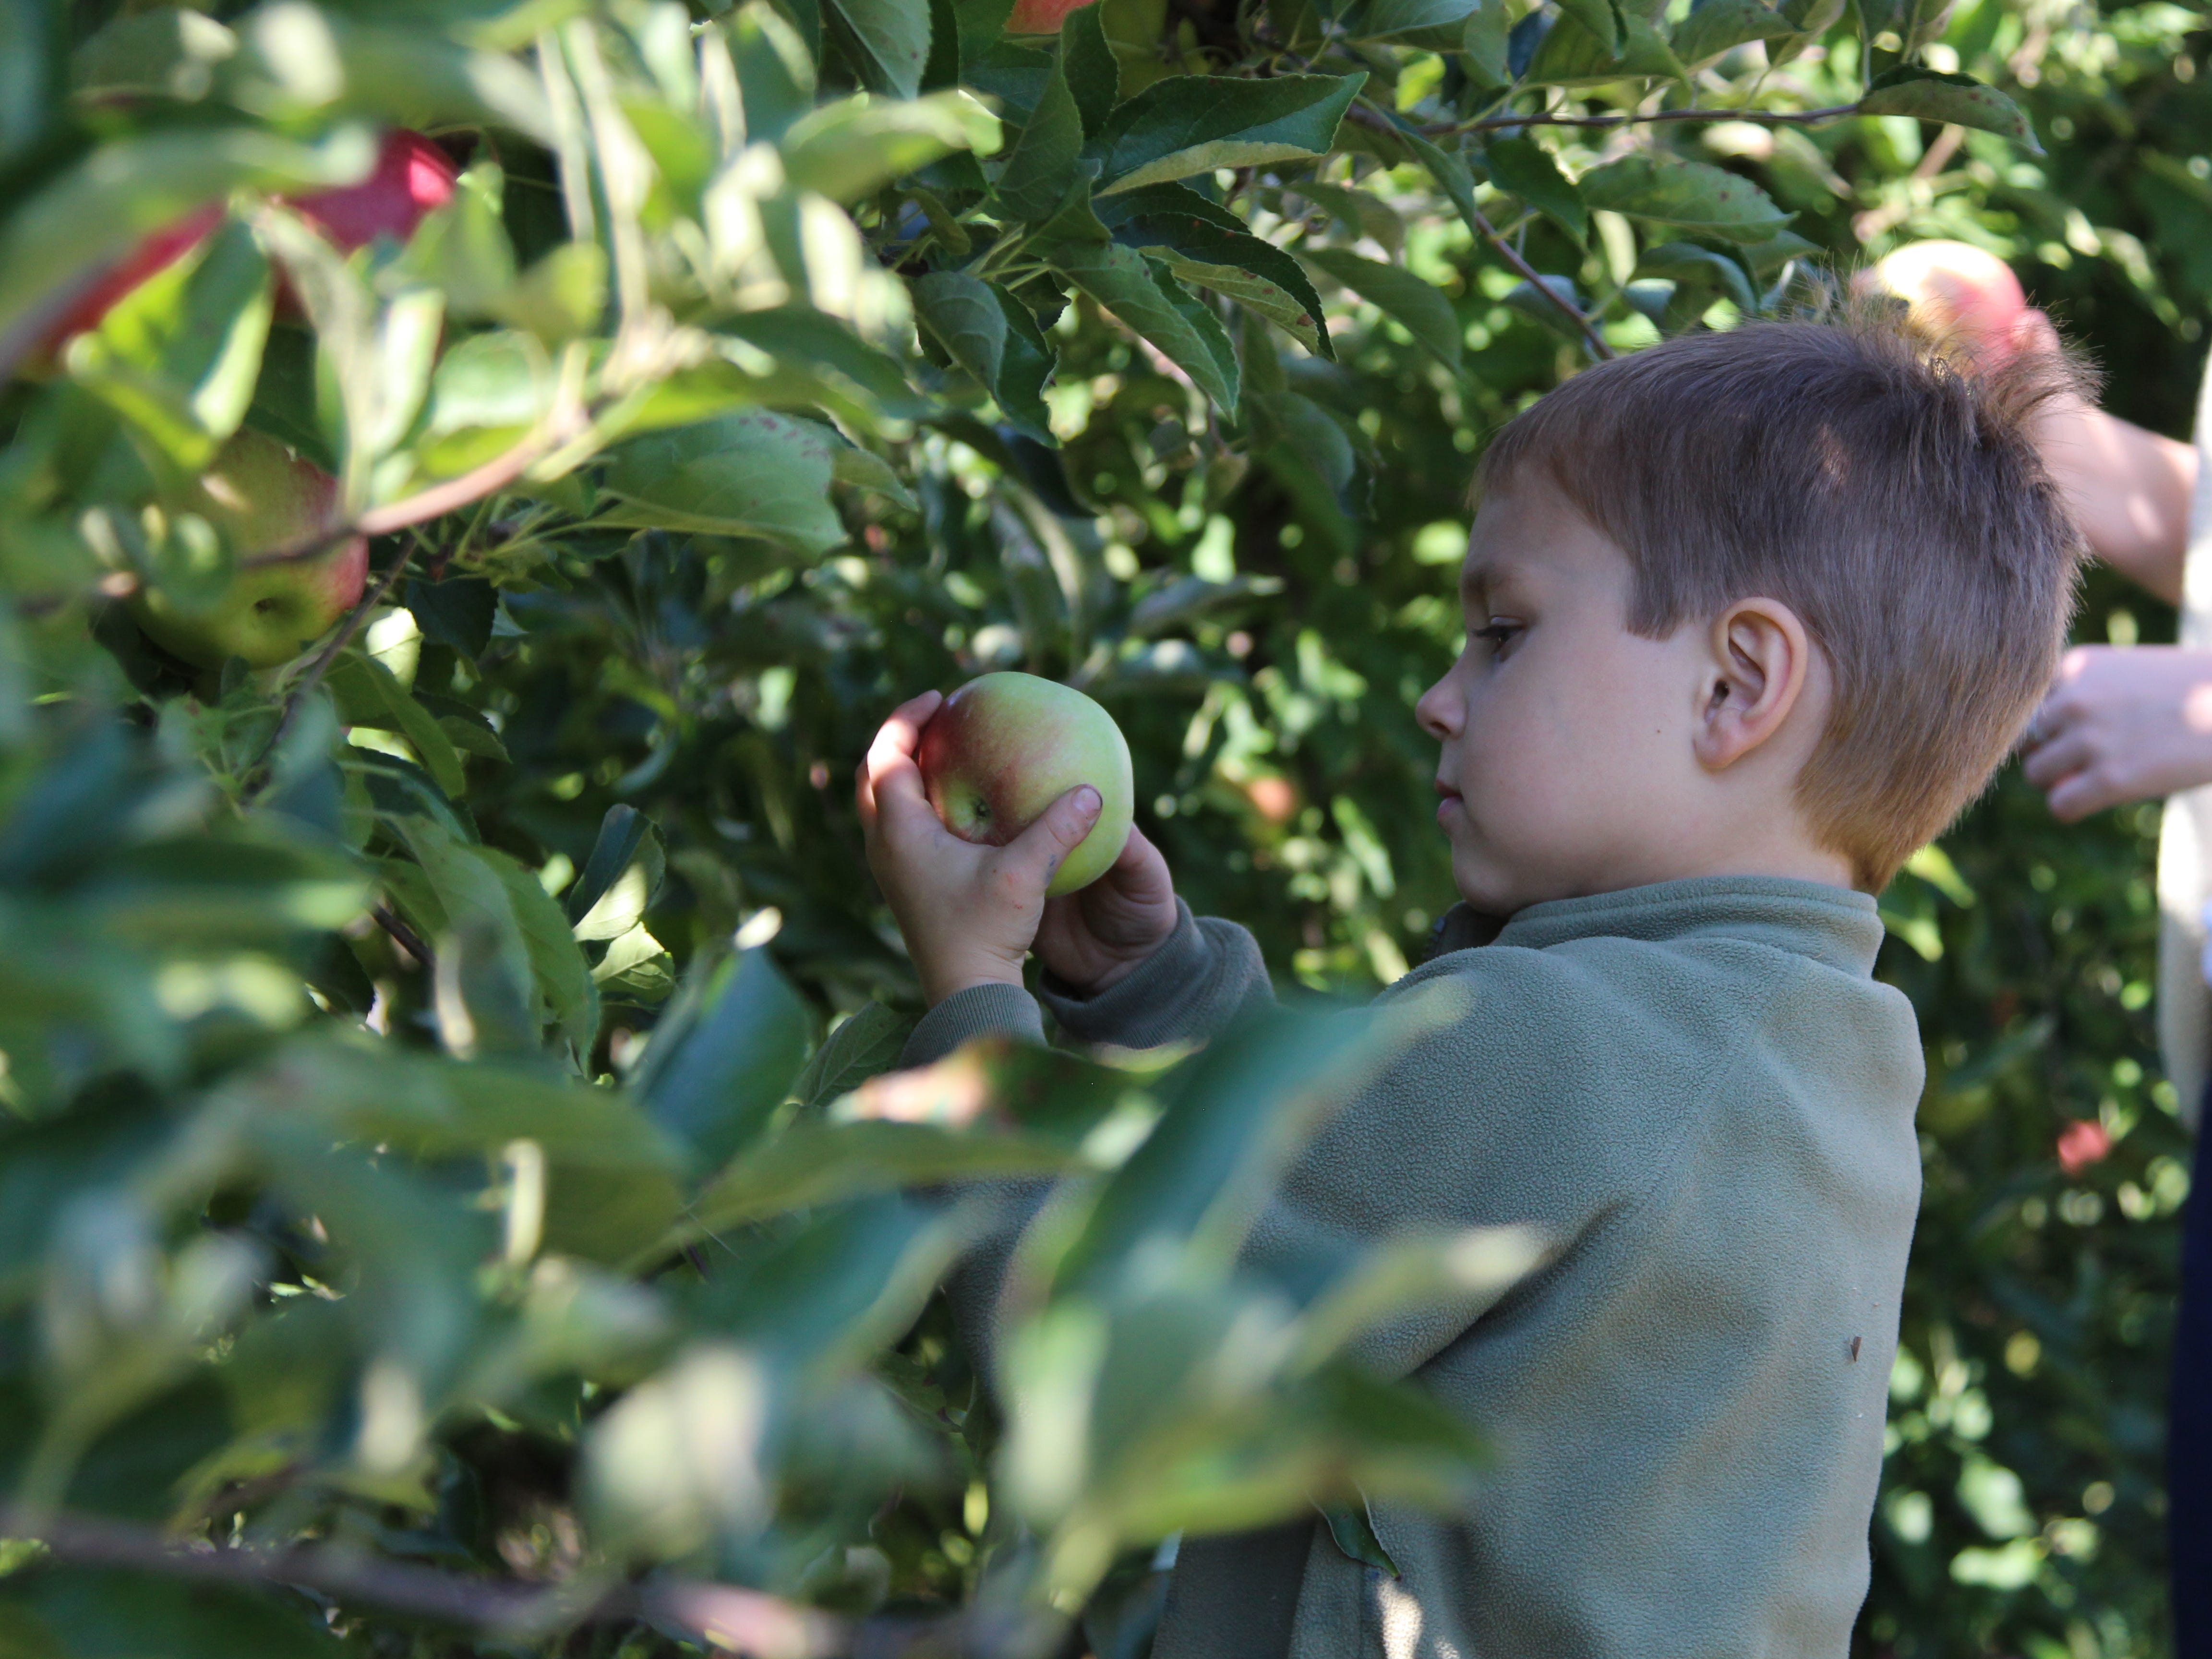 Grahm Hawkins, 5, picks apples Saturday at Applefest at Lawrence Orchards.